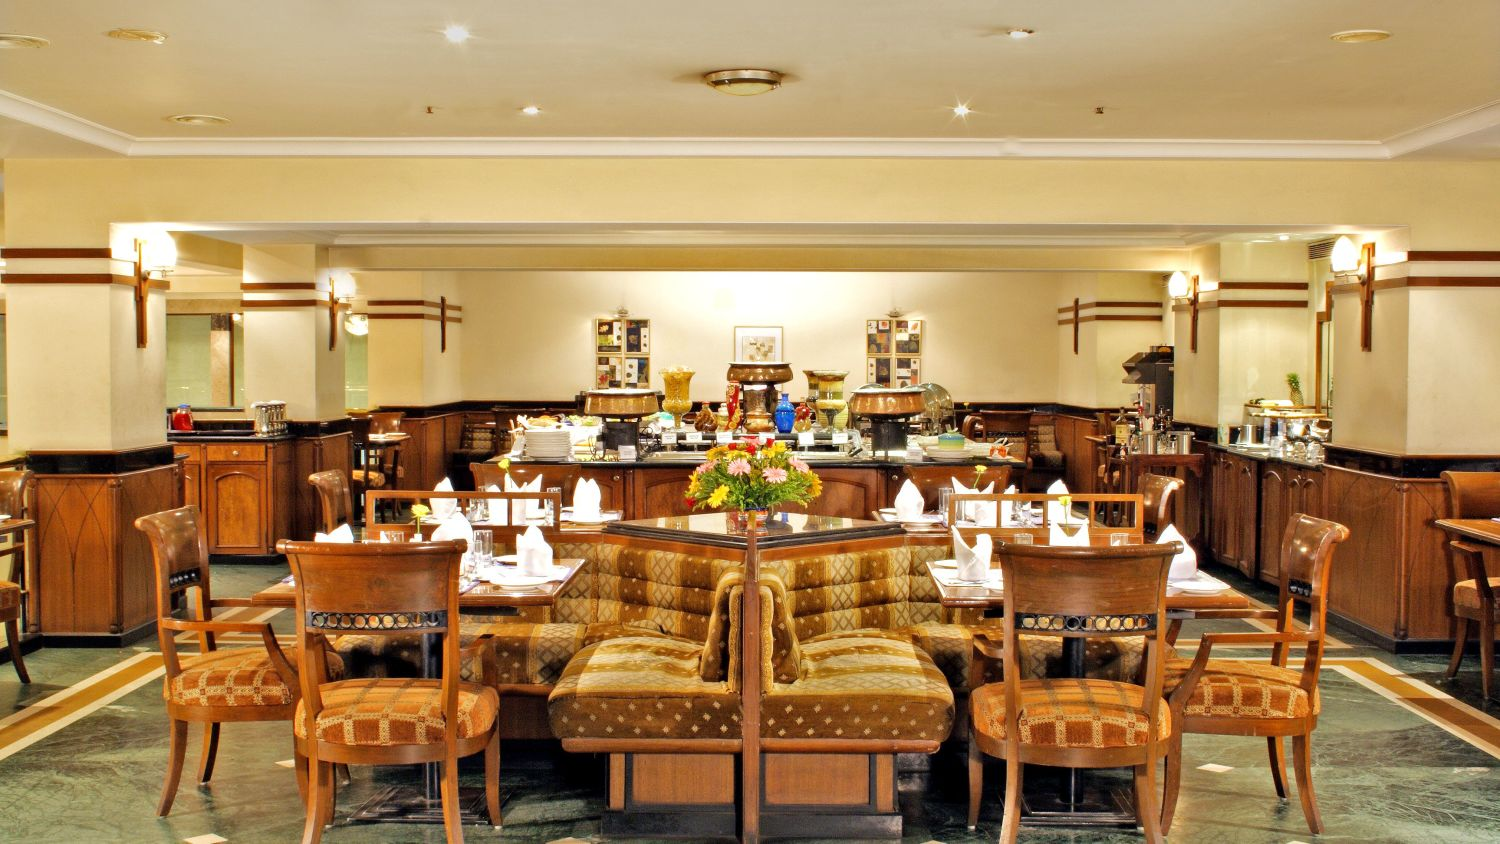 Promenade Restaurant at Aditya Park Hyderabad, hyderabad hotels near HITEC city